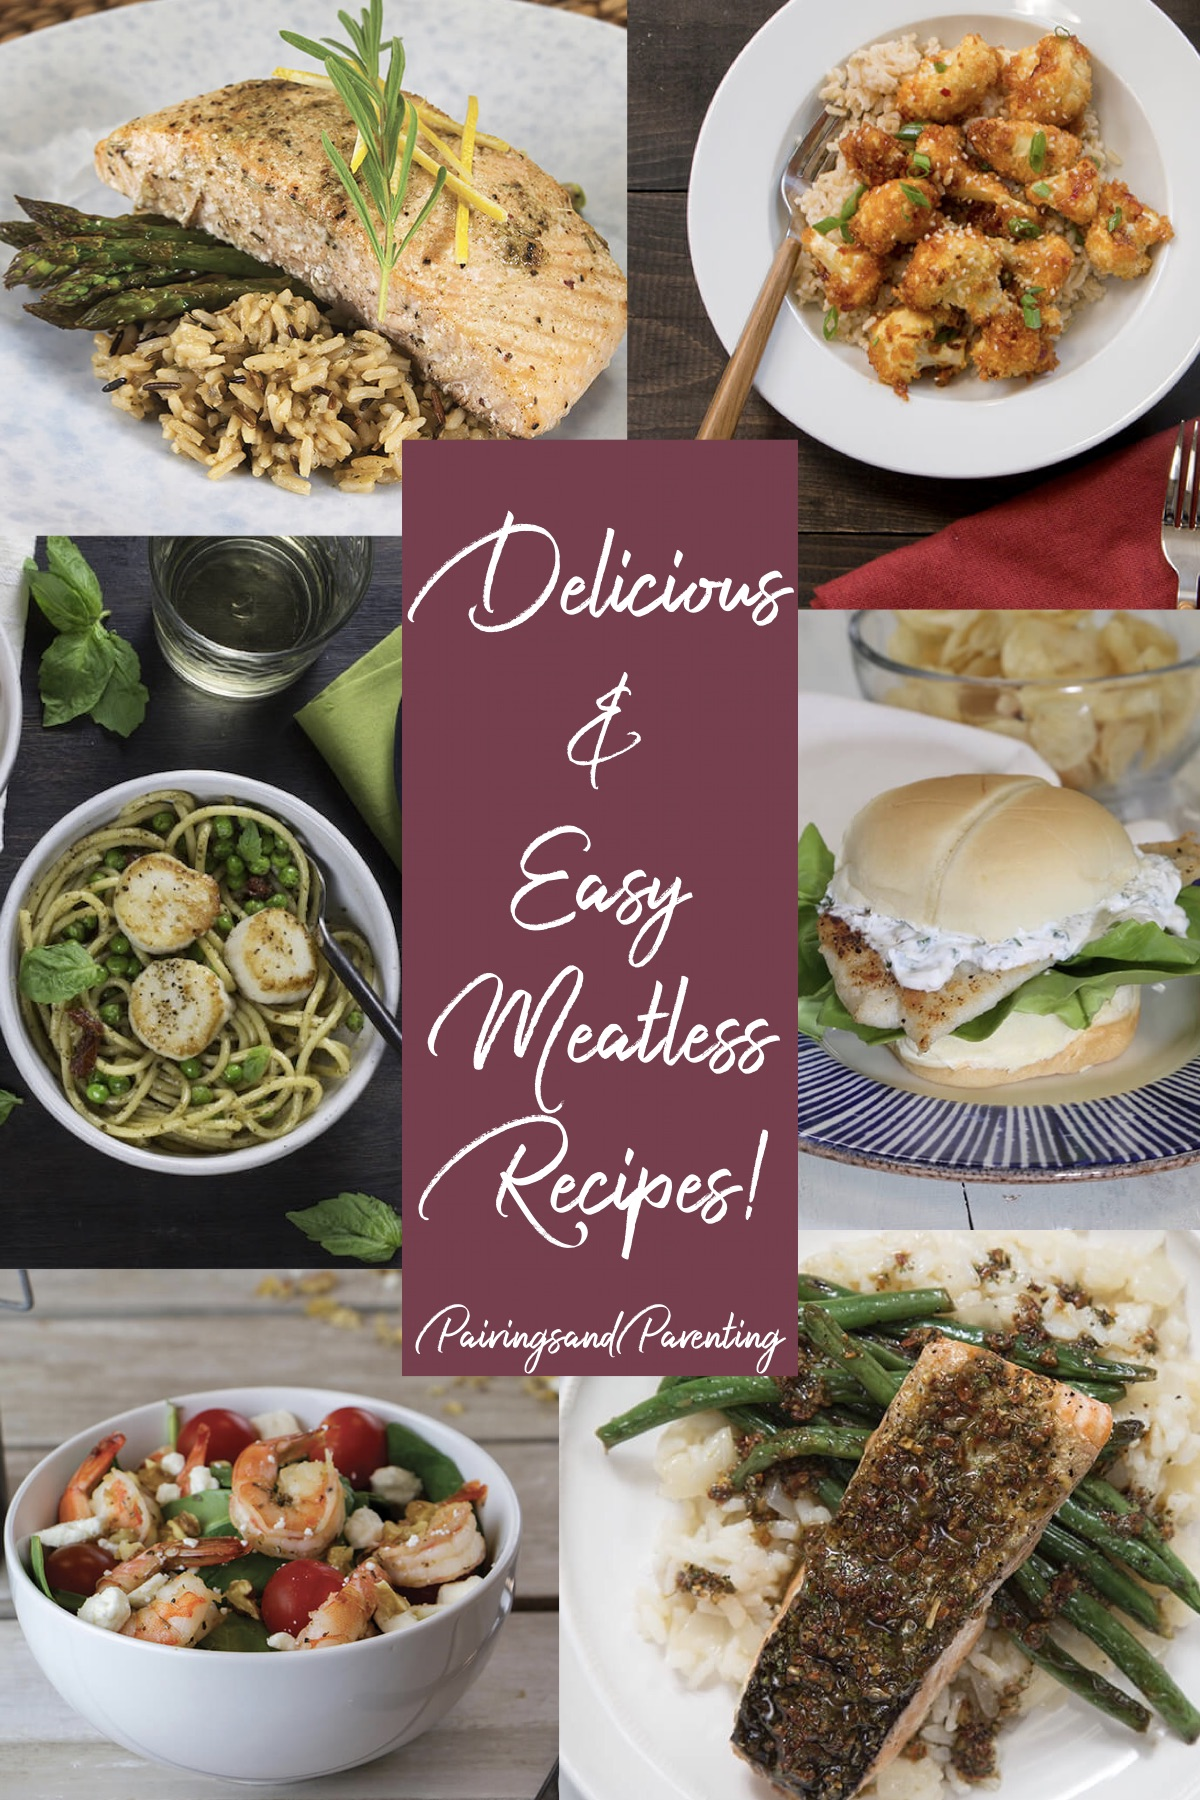 Delicious Meatless Recipes, Perfect for Lent!